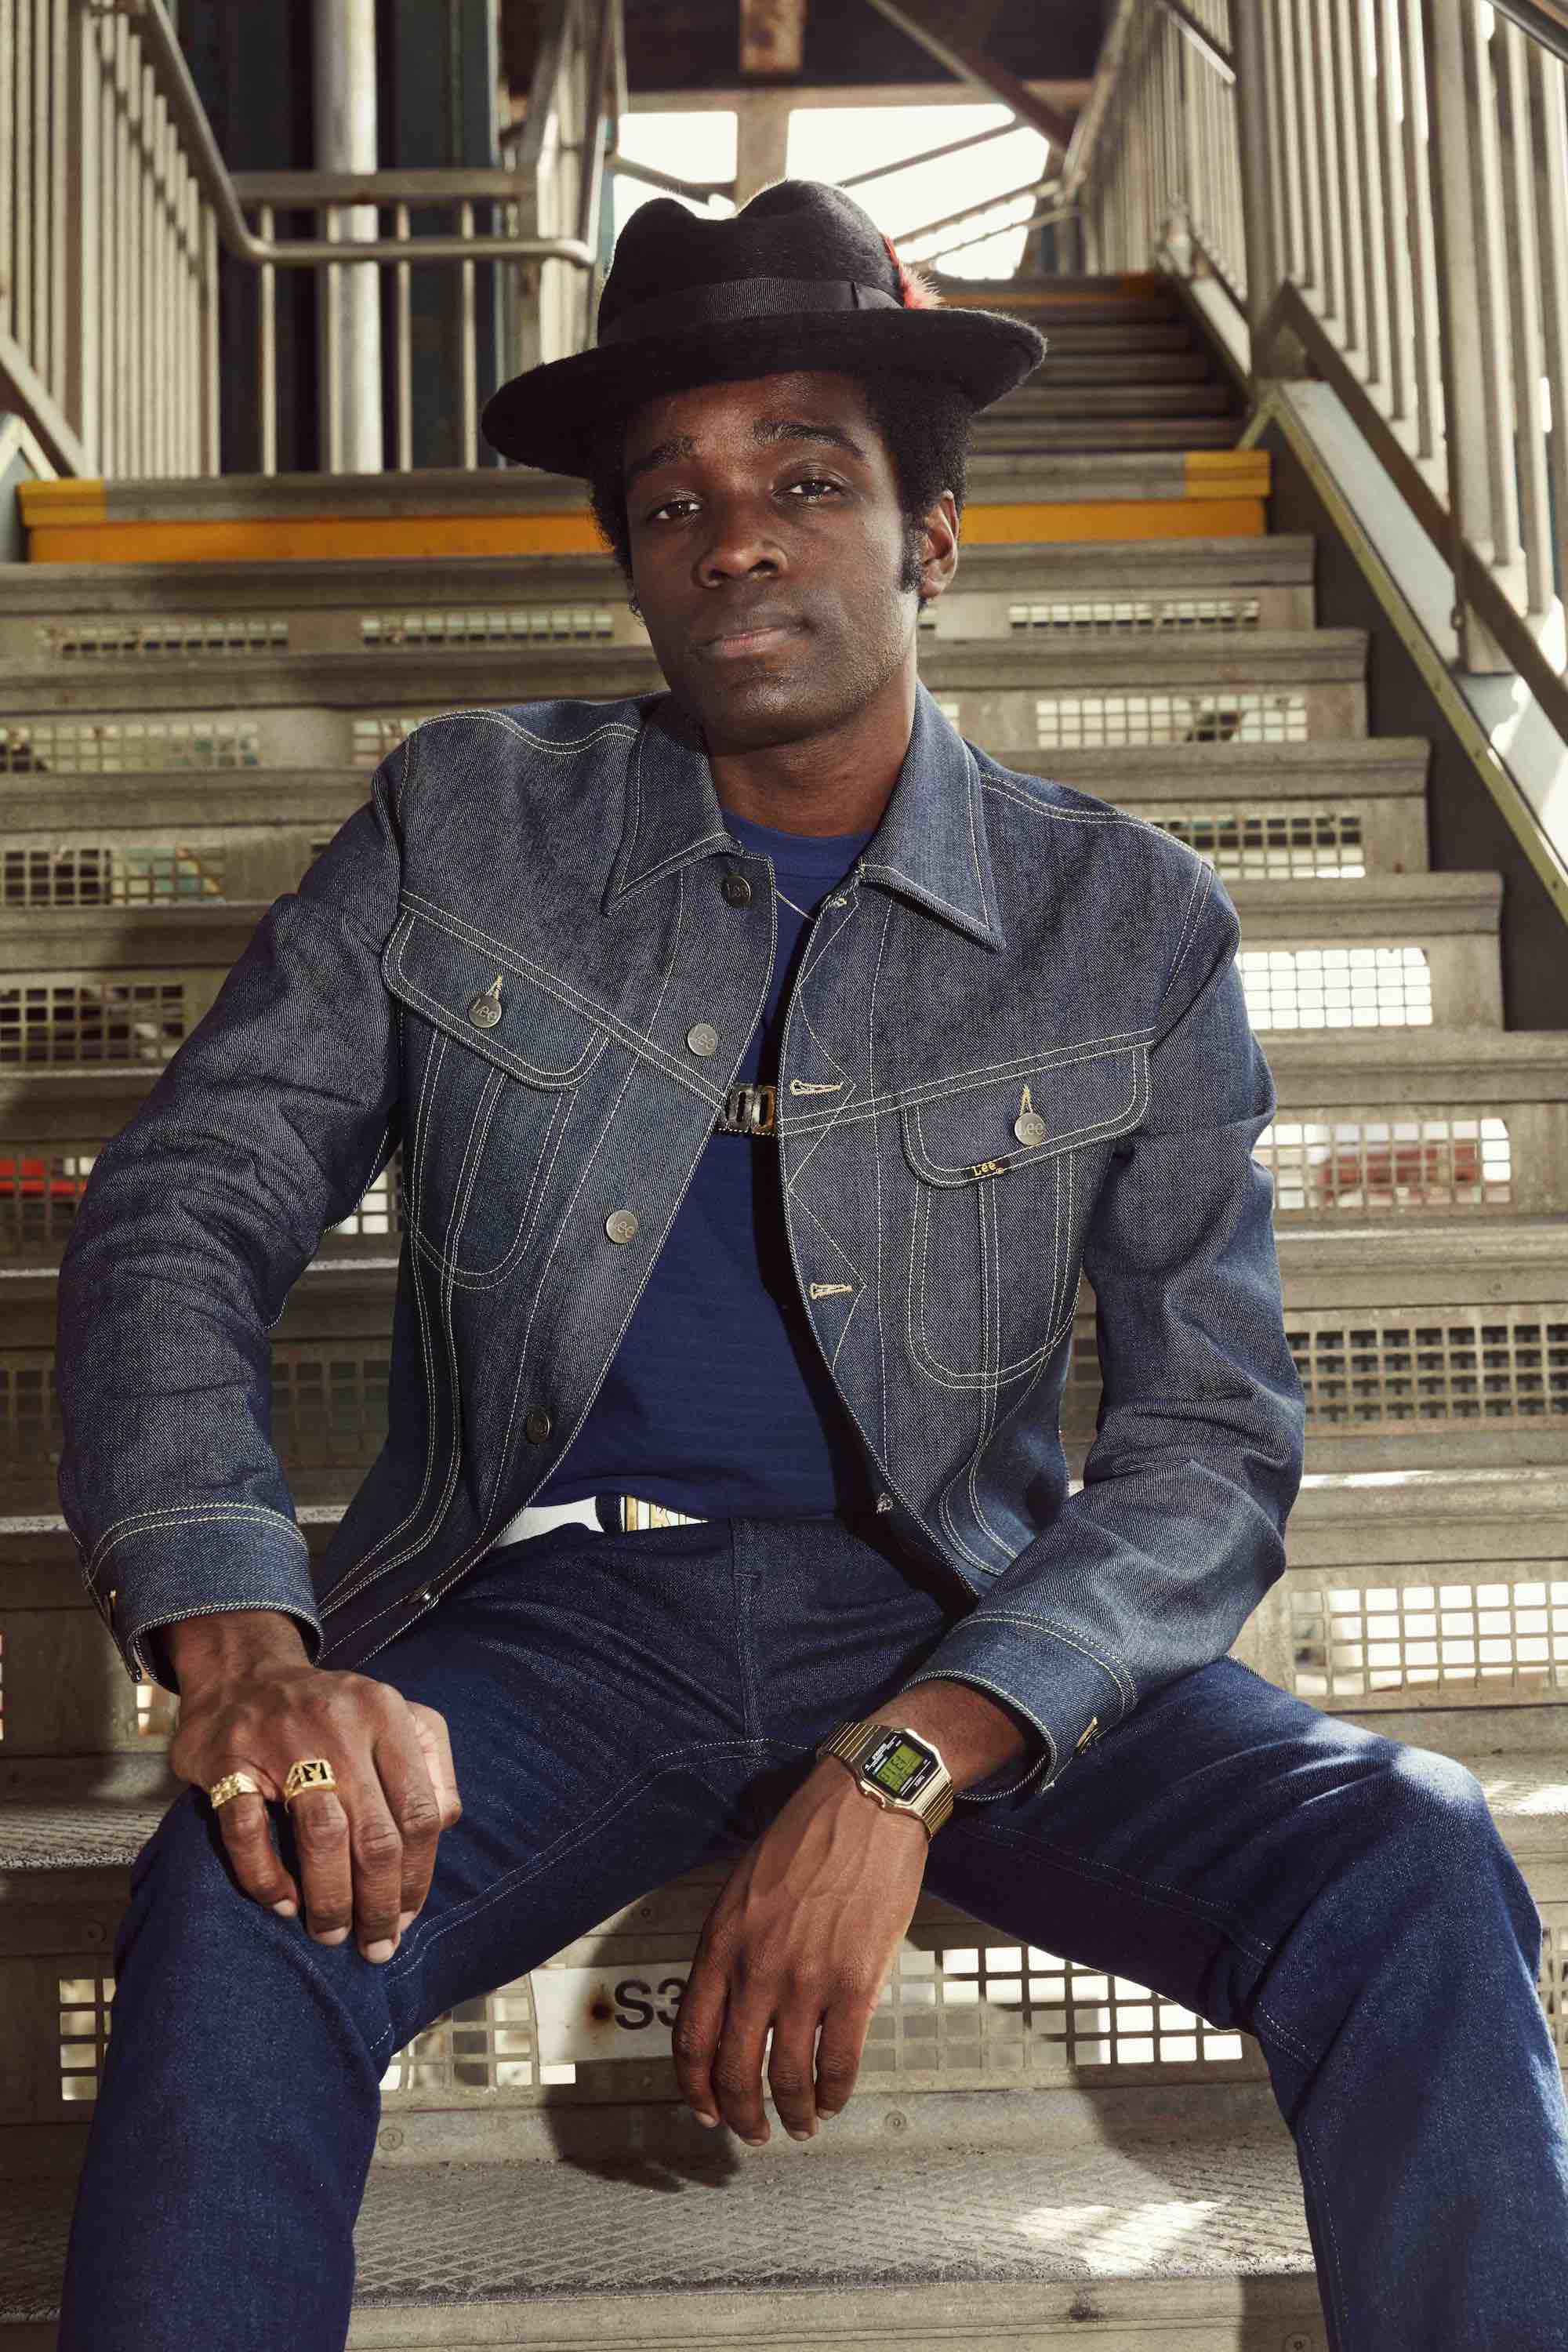 Lee Jeans SS19 campaign double denim